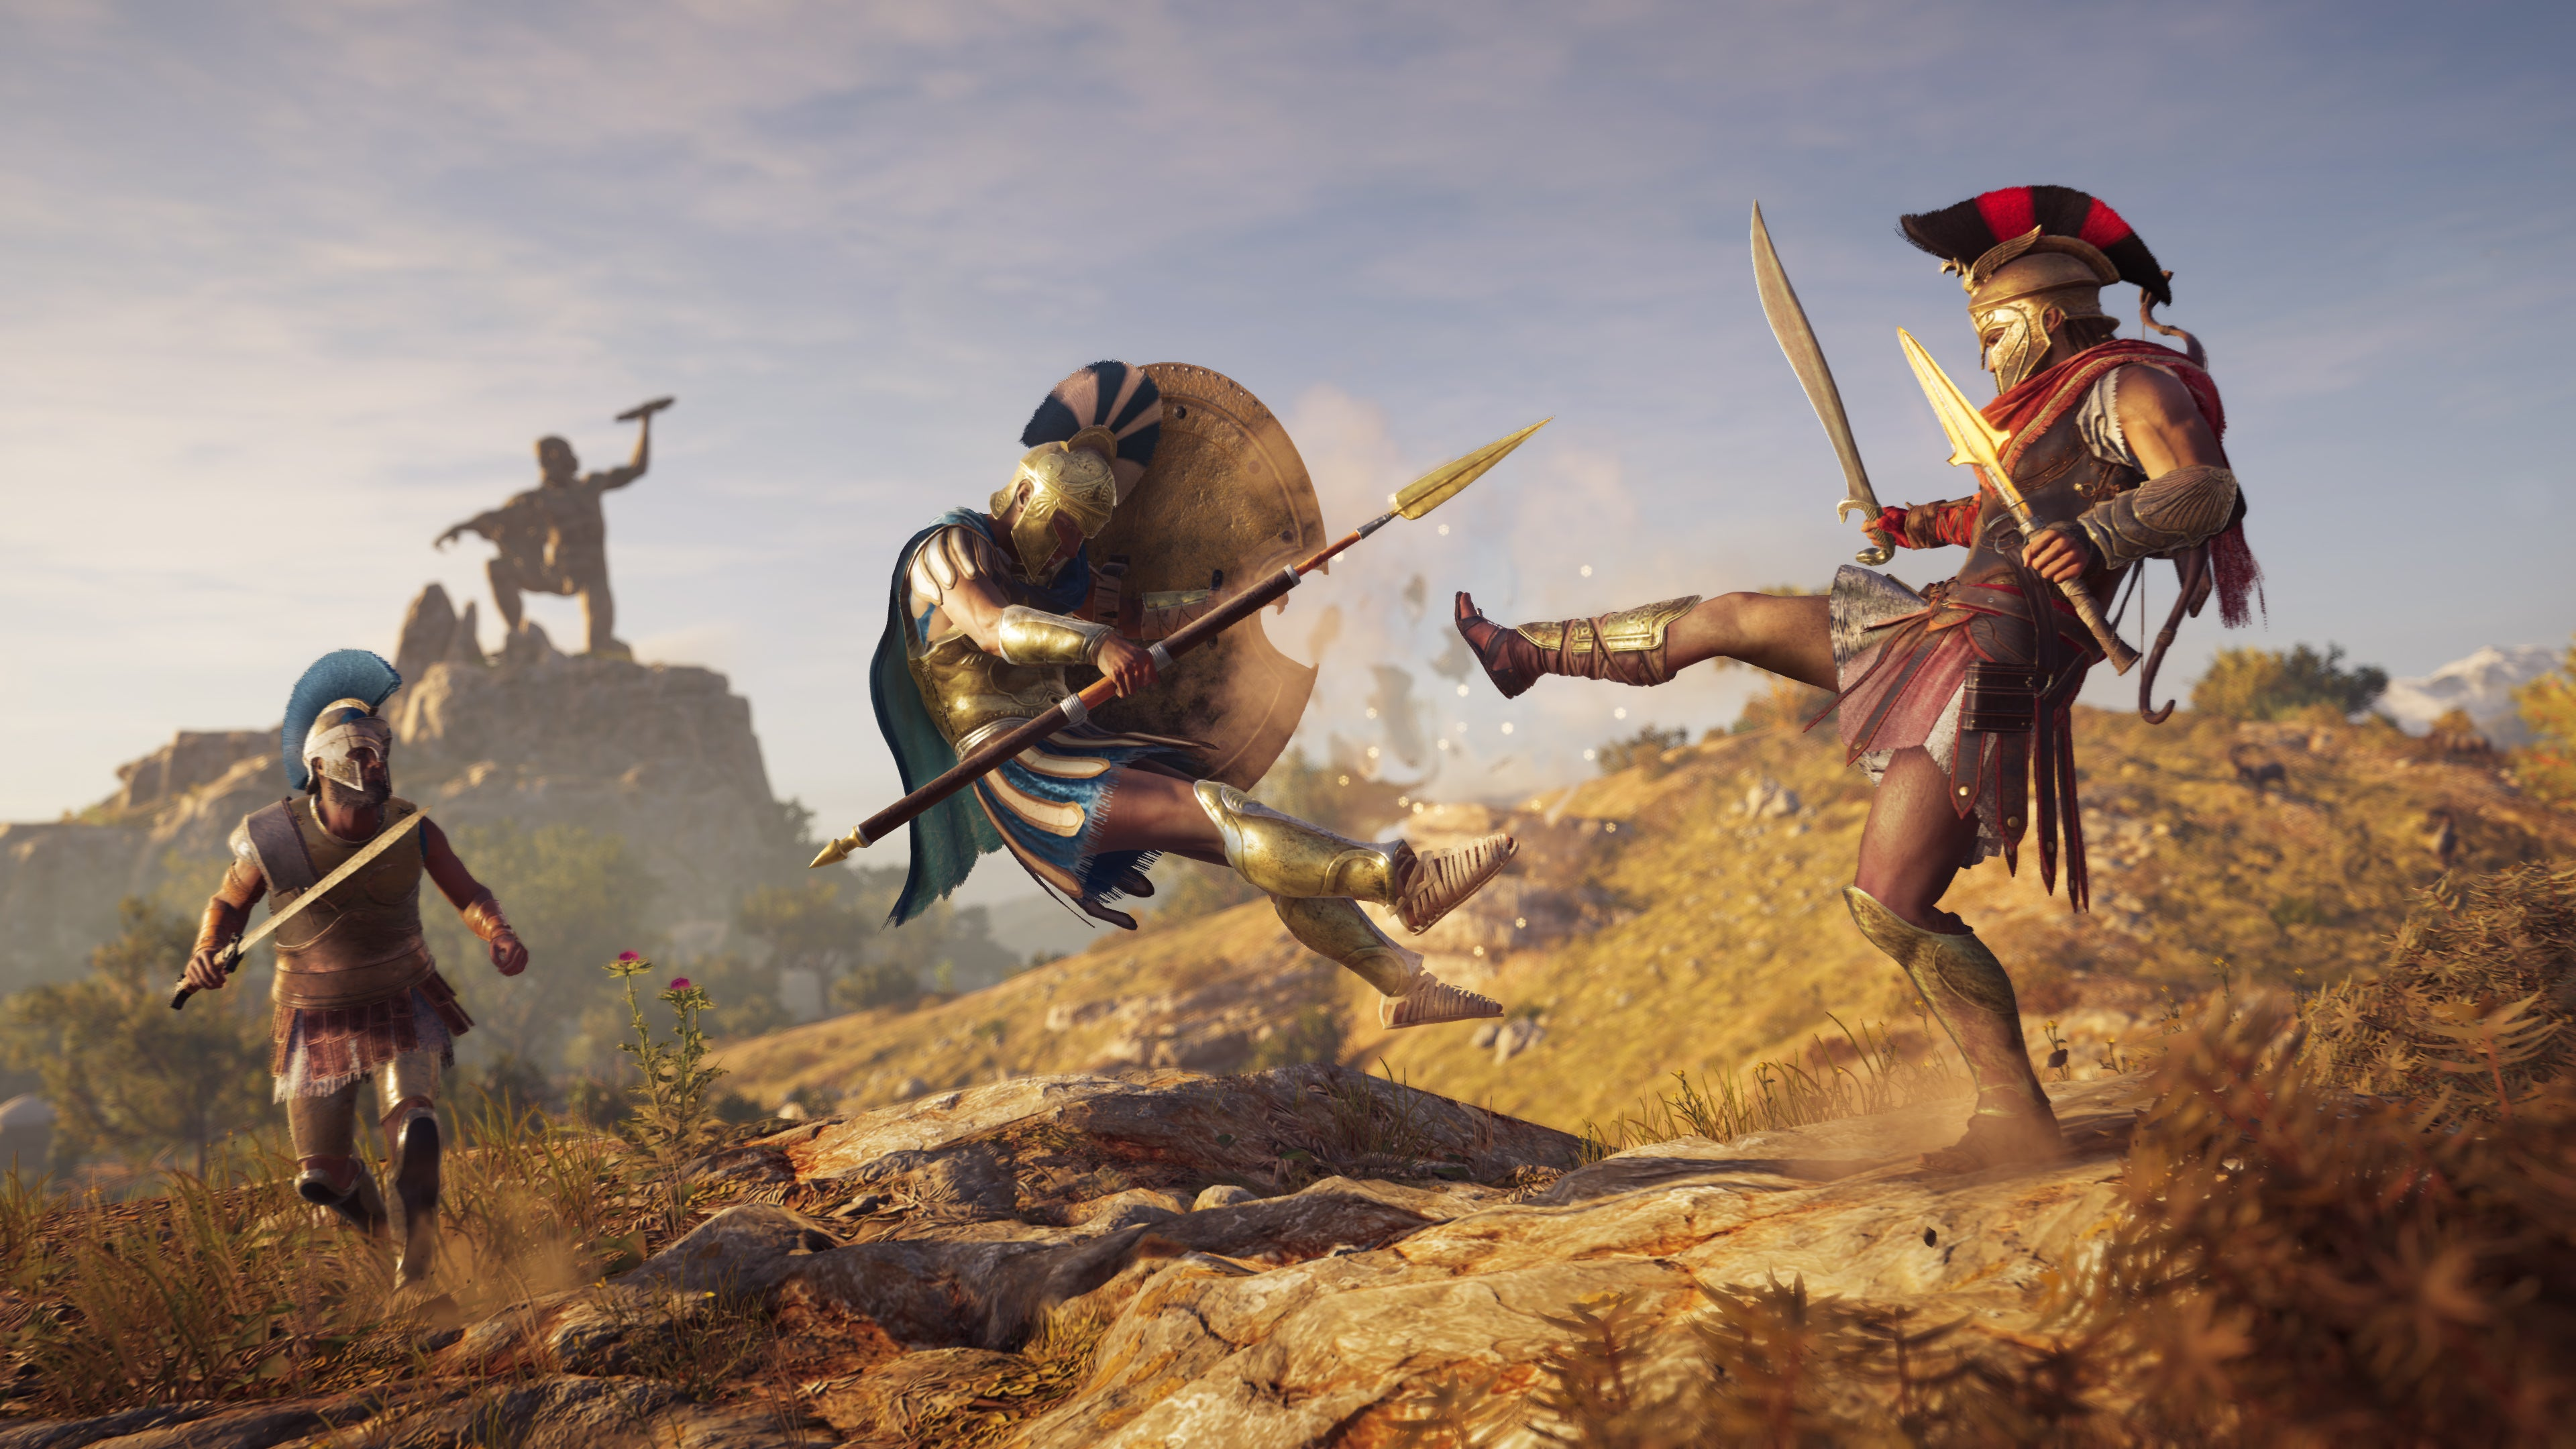 Assassin's Creed Odyssey: Preview, news, trailers and more